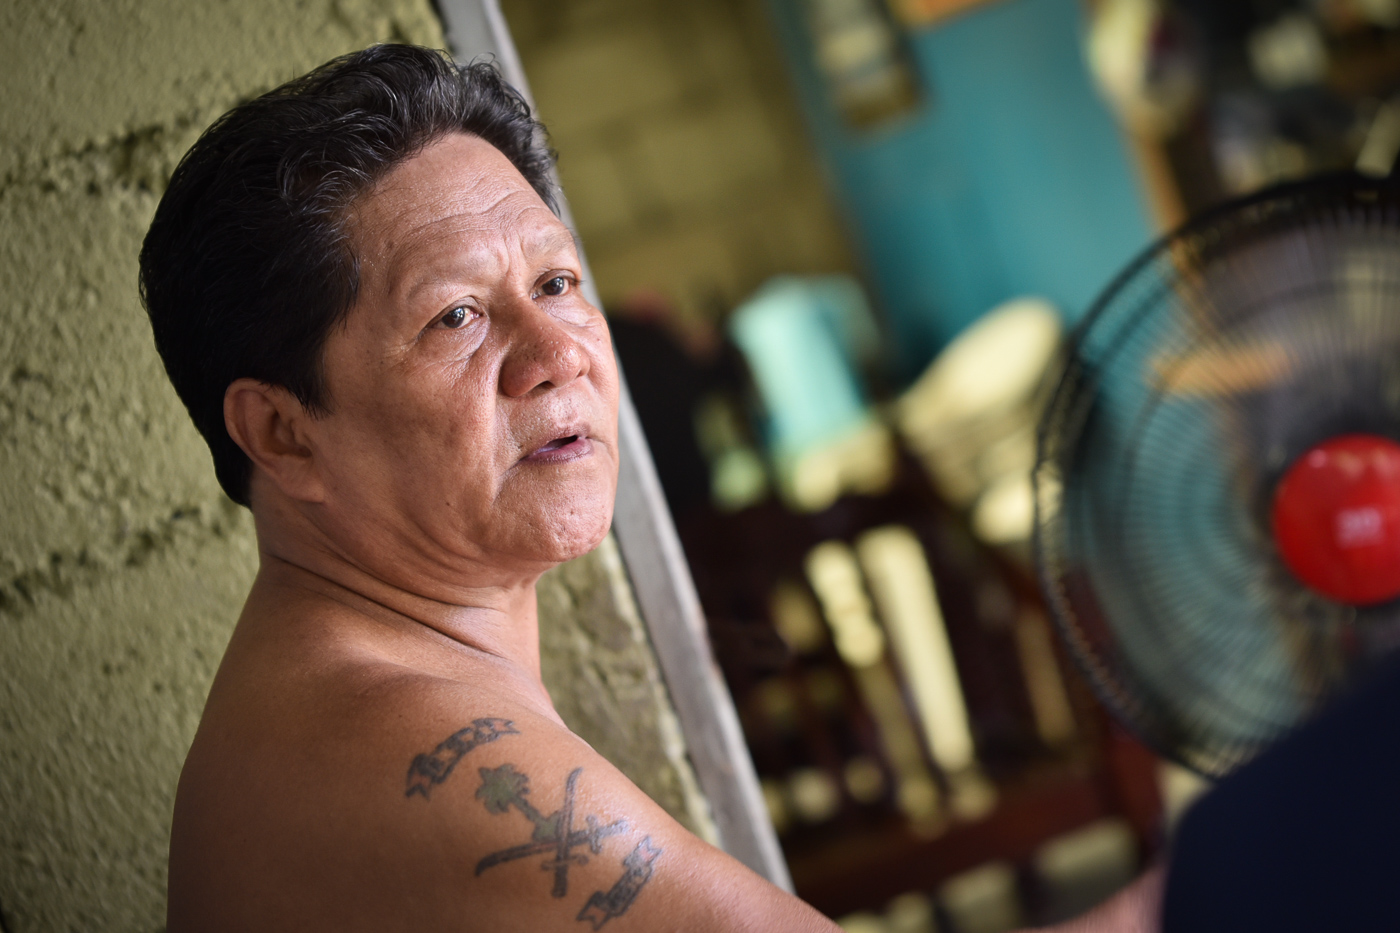 STRANDED. Rustico Lacostales, OFW stranded for 25 years in Saudi Arabia. Photo by LeAnne Jazul/Rappler